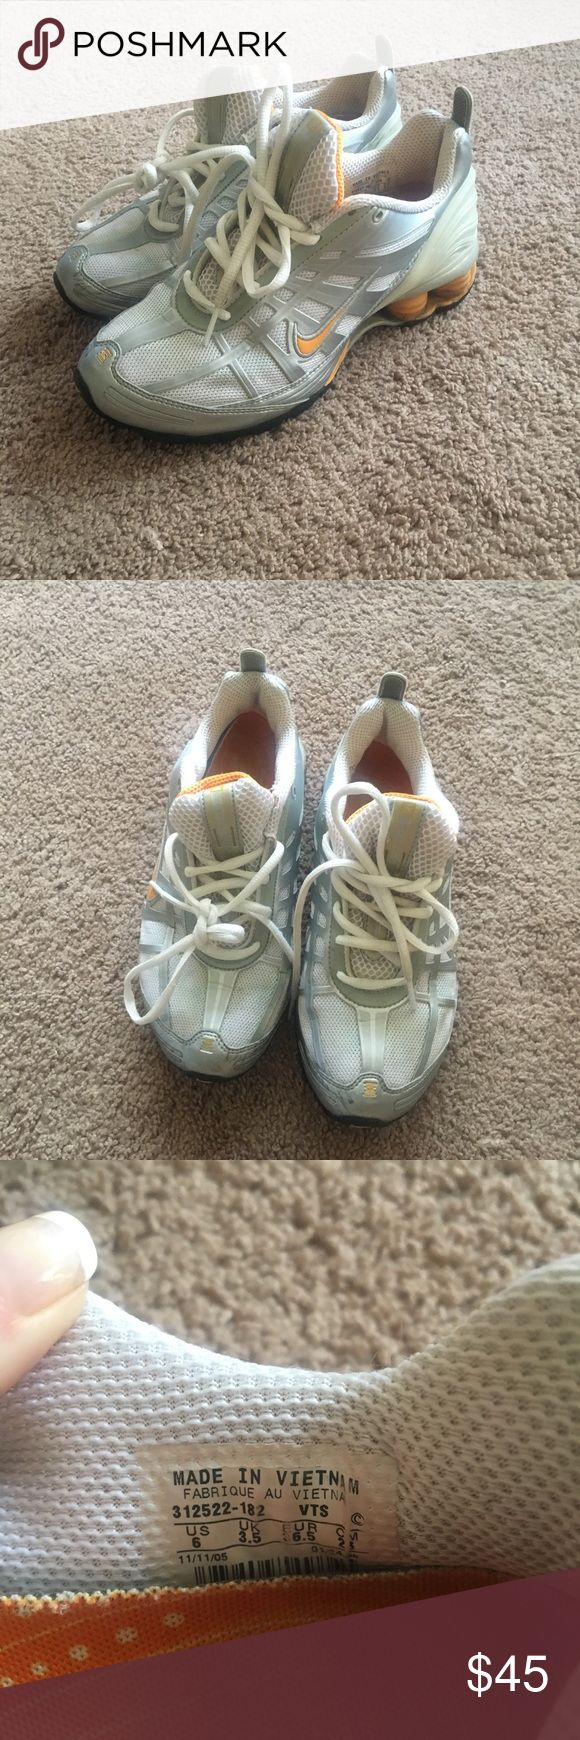 Nike Women's running sneakers. Size 6. White and silver with light orange accents. Worn a few times. Overall clean and in good condition. Nike Shoes Sneakers